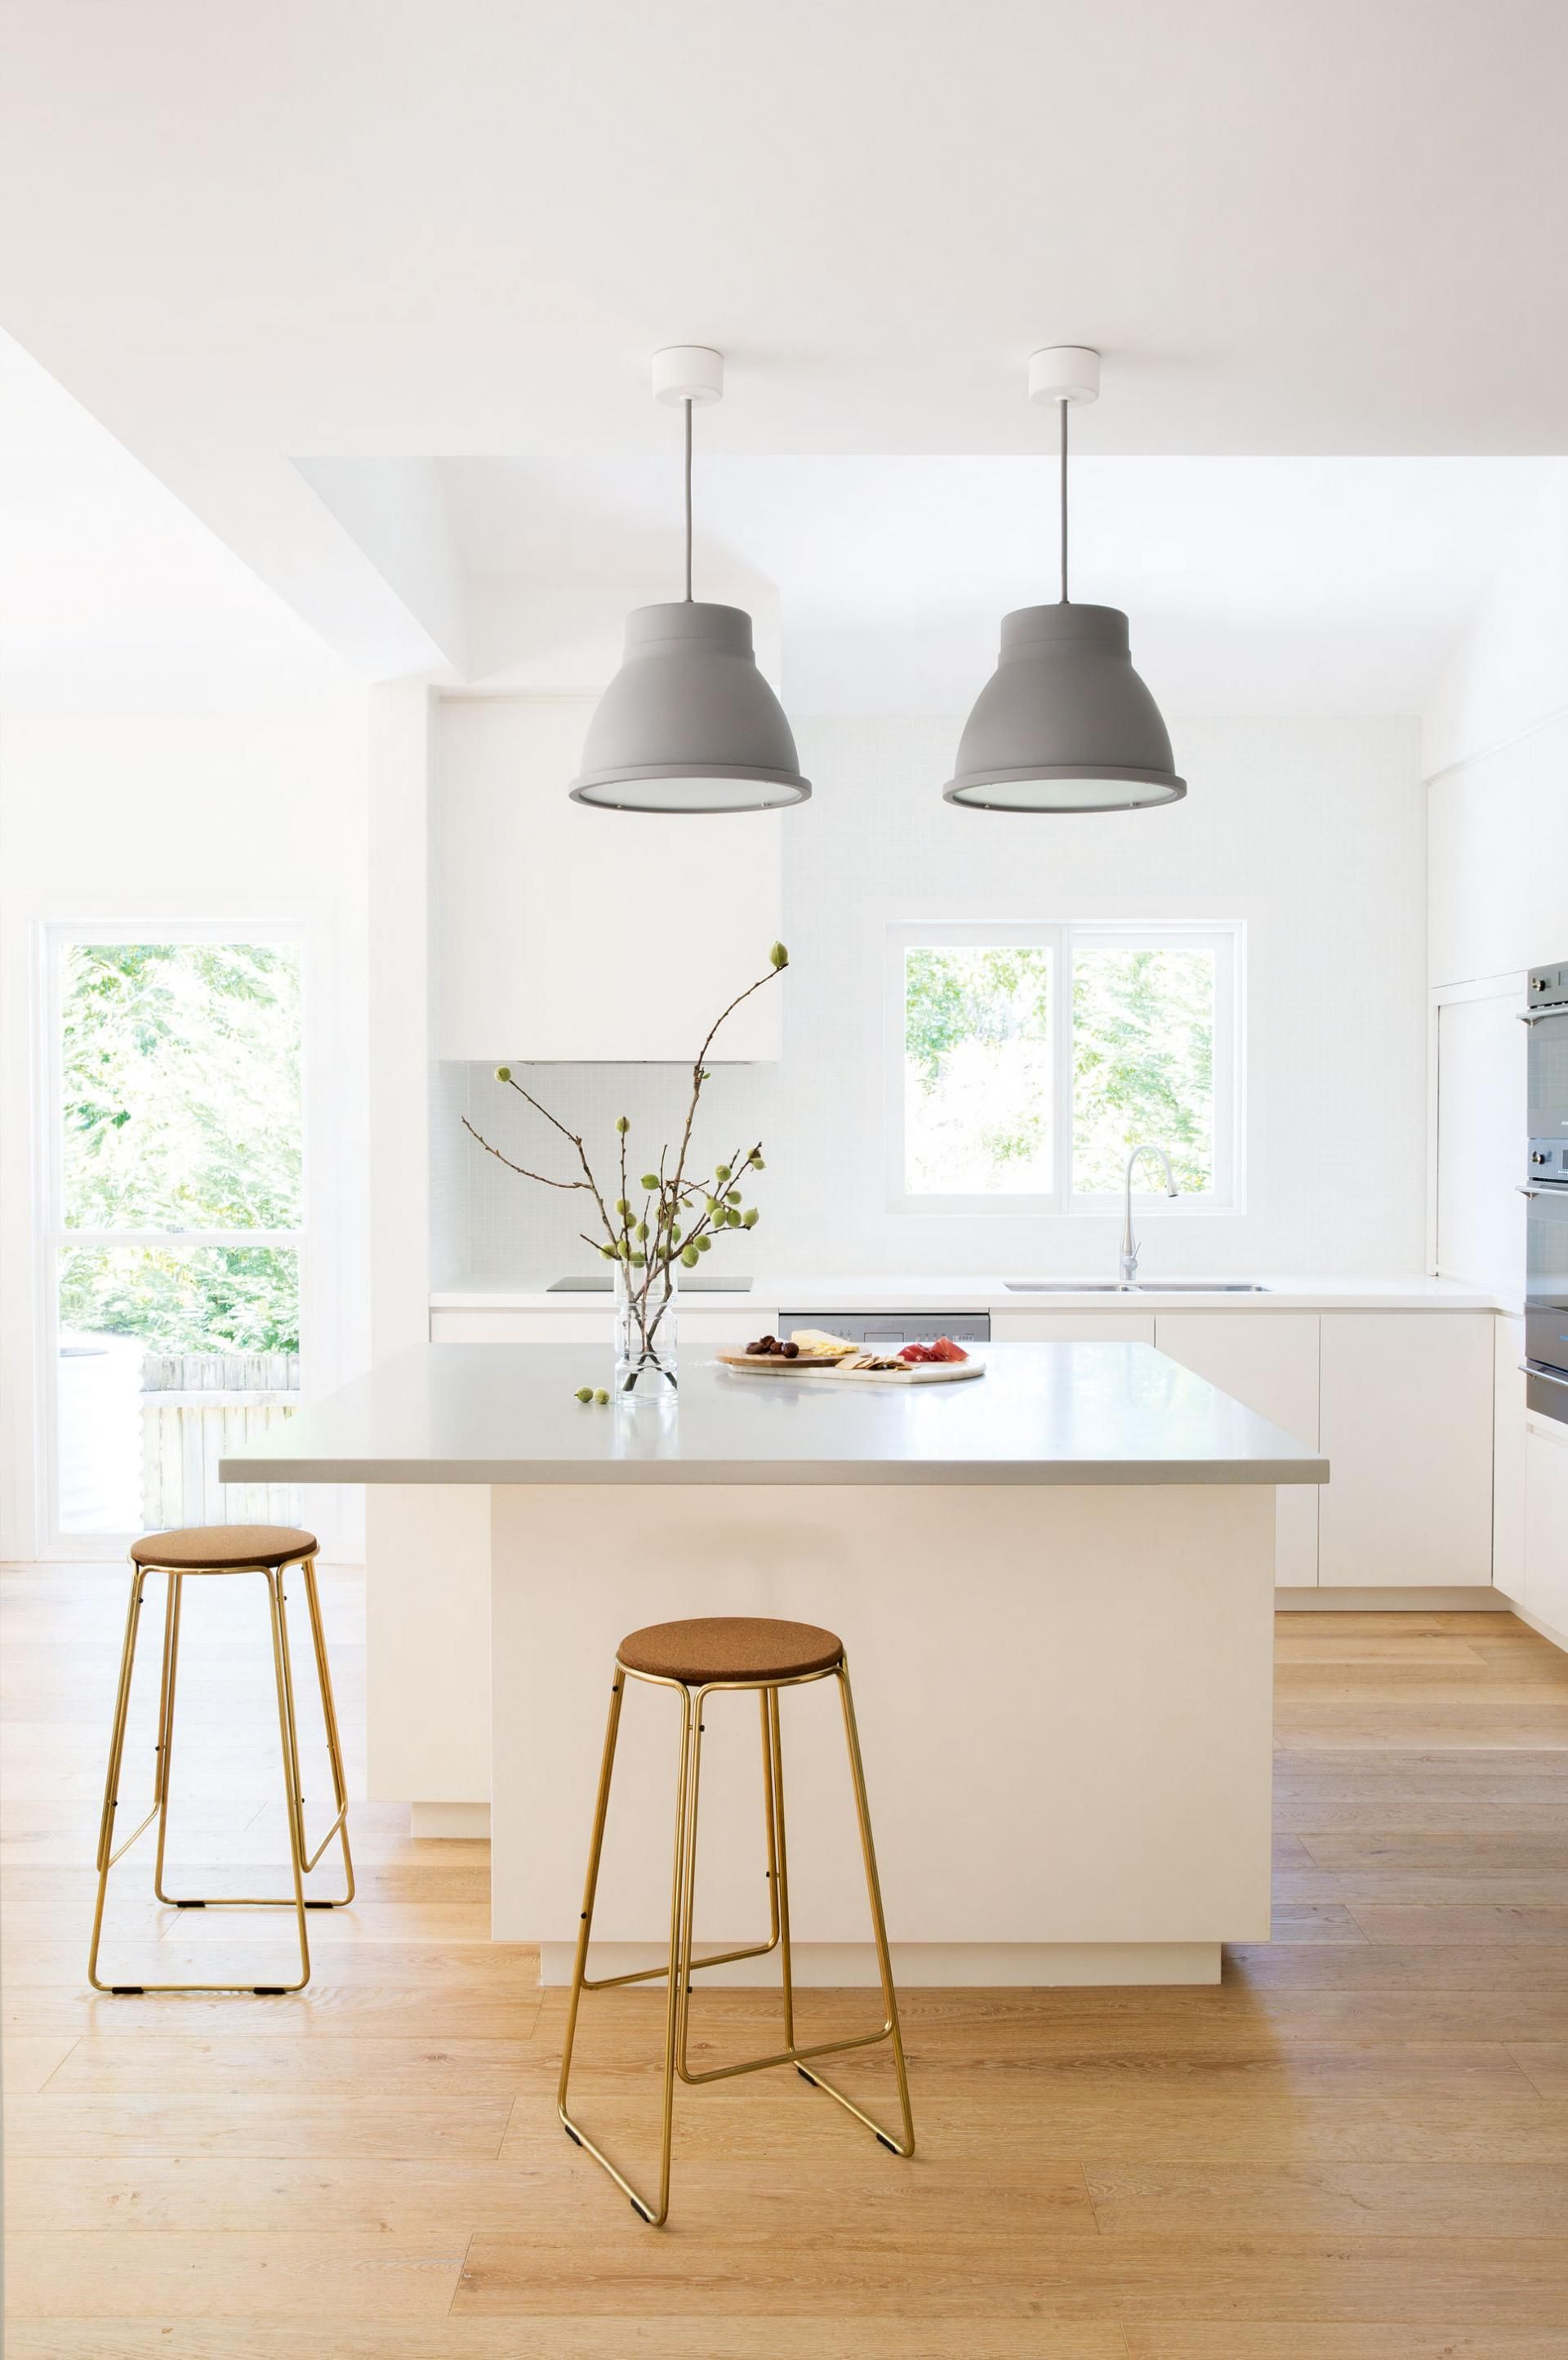 Keukeneiland Hanglampen The Best White Kitchens Styling By Rebecca Jansma Suzanne